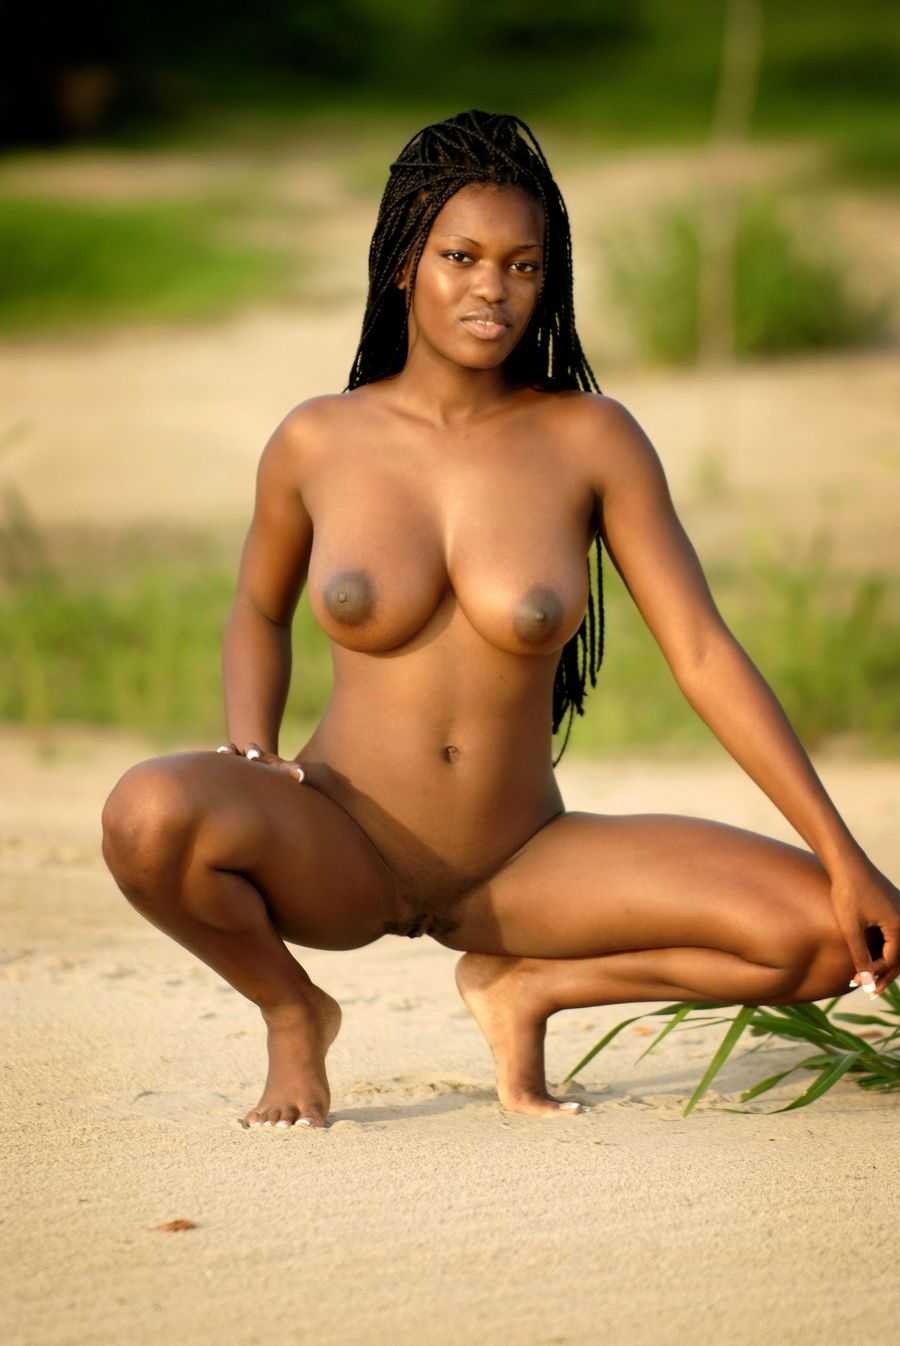 Free pictures of skinny nude black women